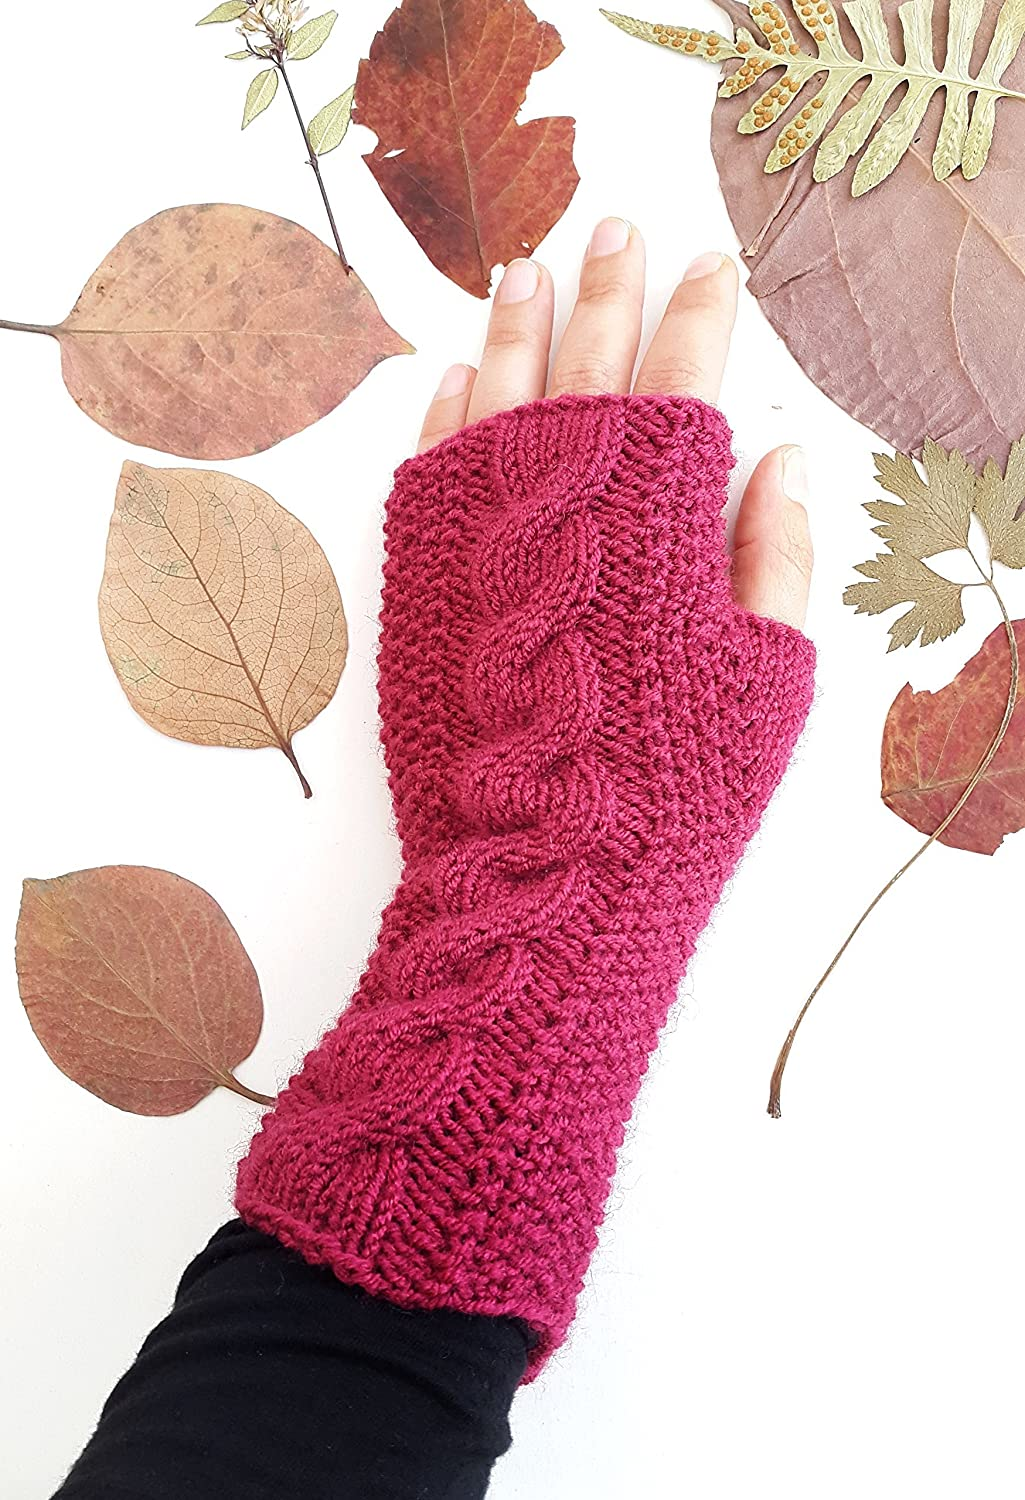 Magenta cable knit gloves - Magenta gloves Fingerless gloves Fingerless mittens Womens gloves Knit wrist warmer Christmas gift ideas Gift under 30